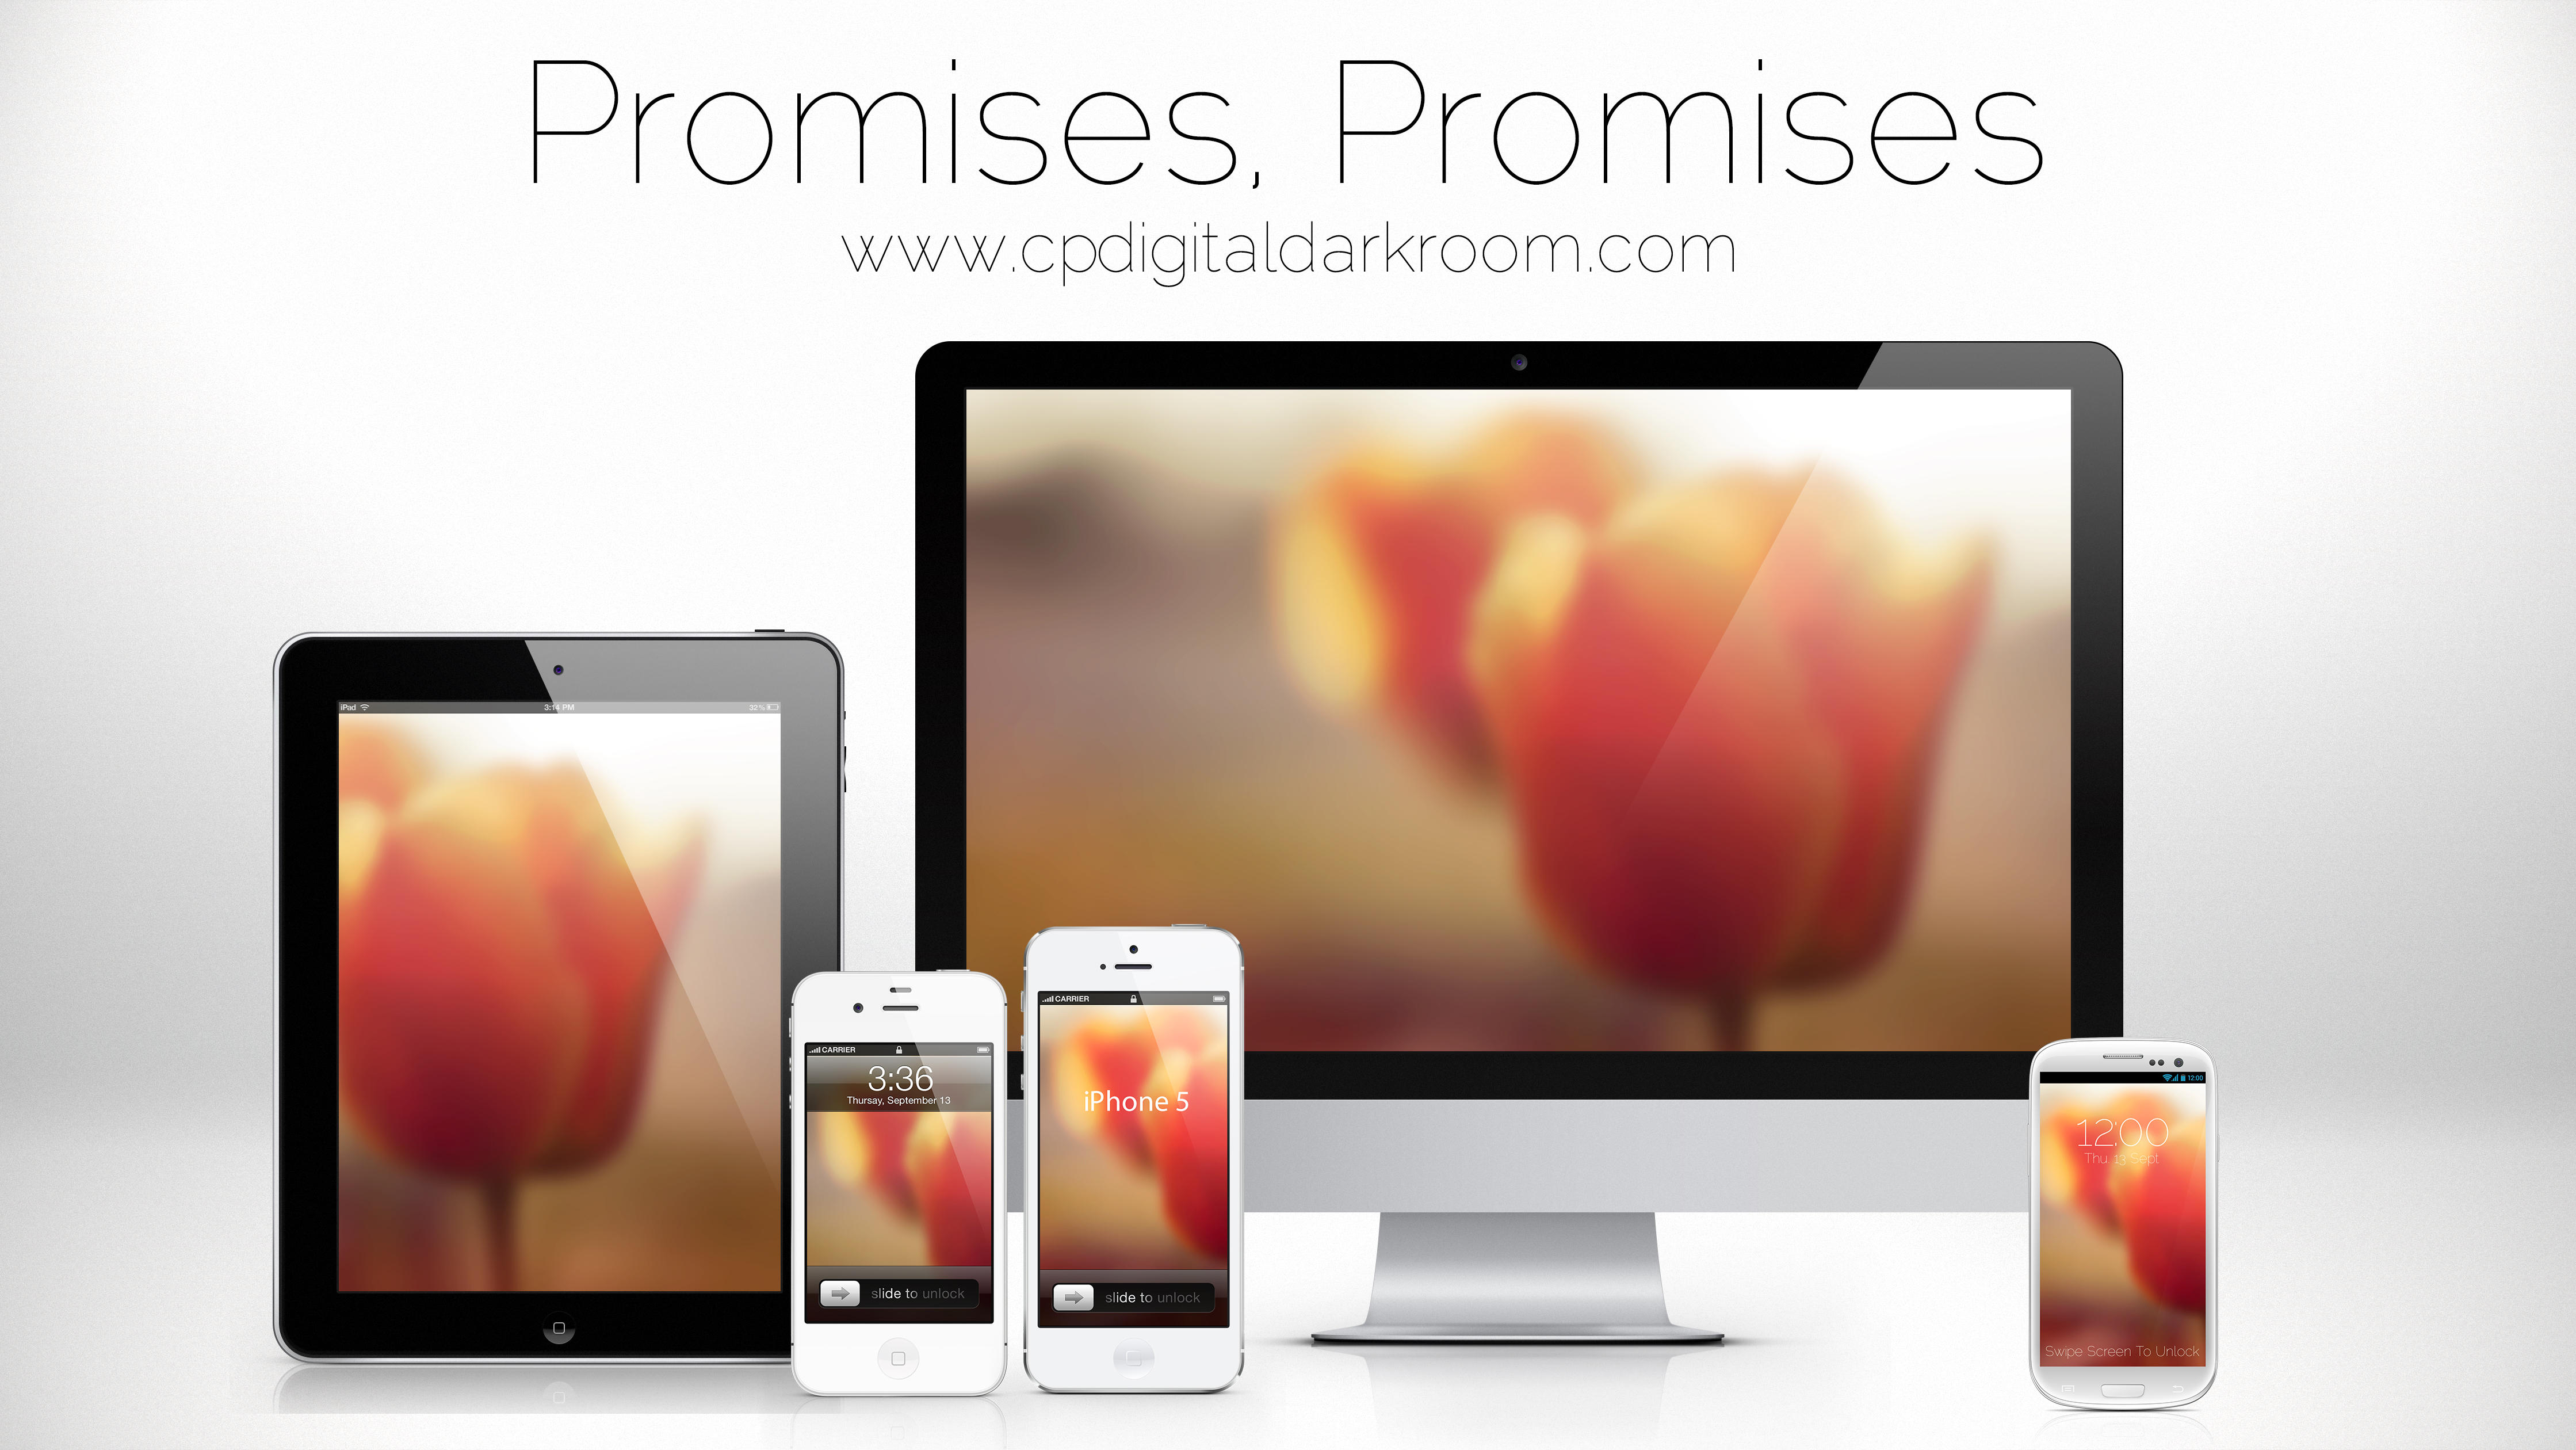 Promises Wallpaper Pack By CPDigitalDarkroom